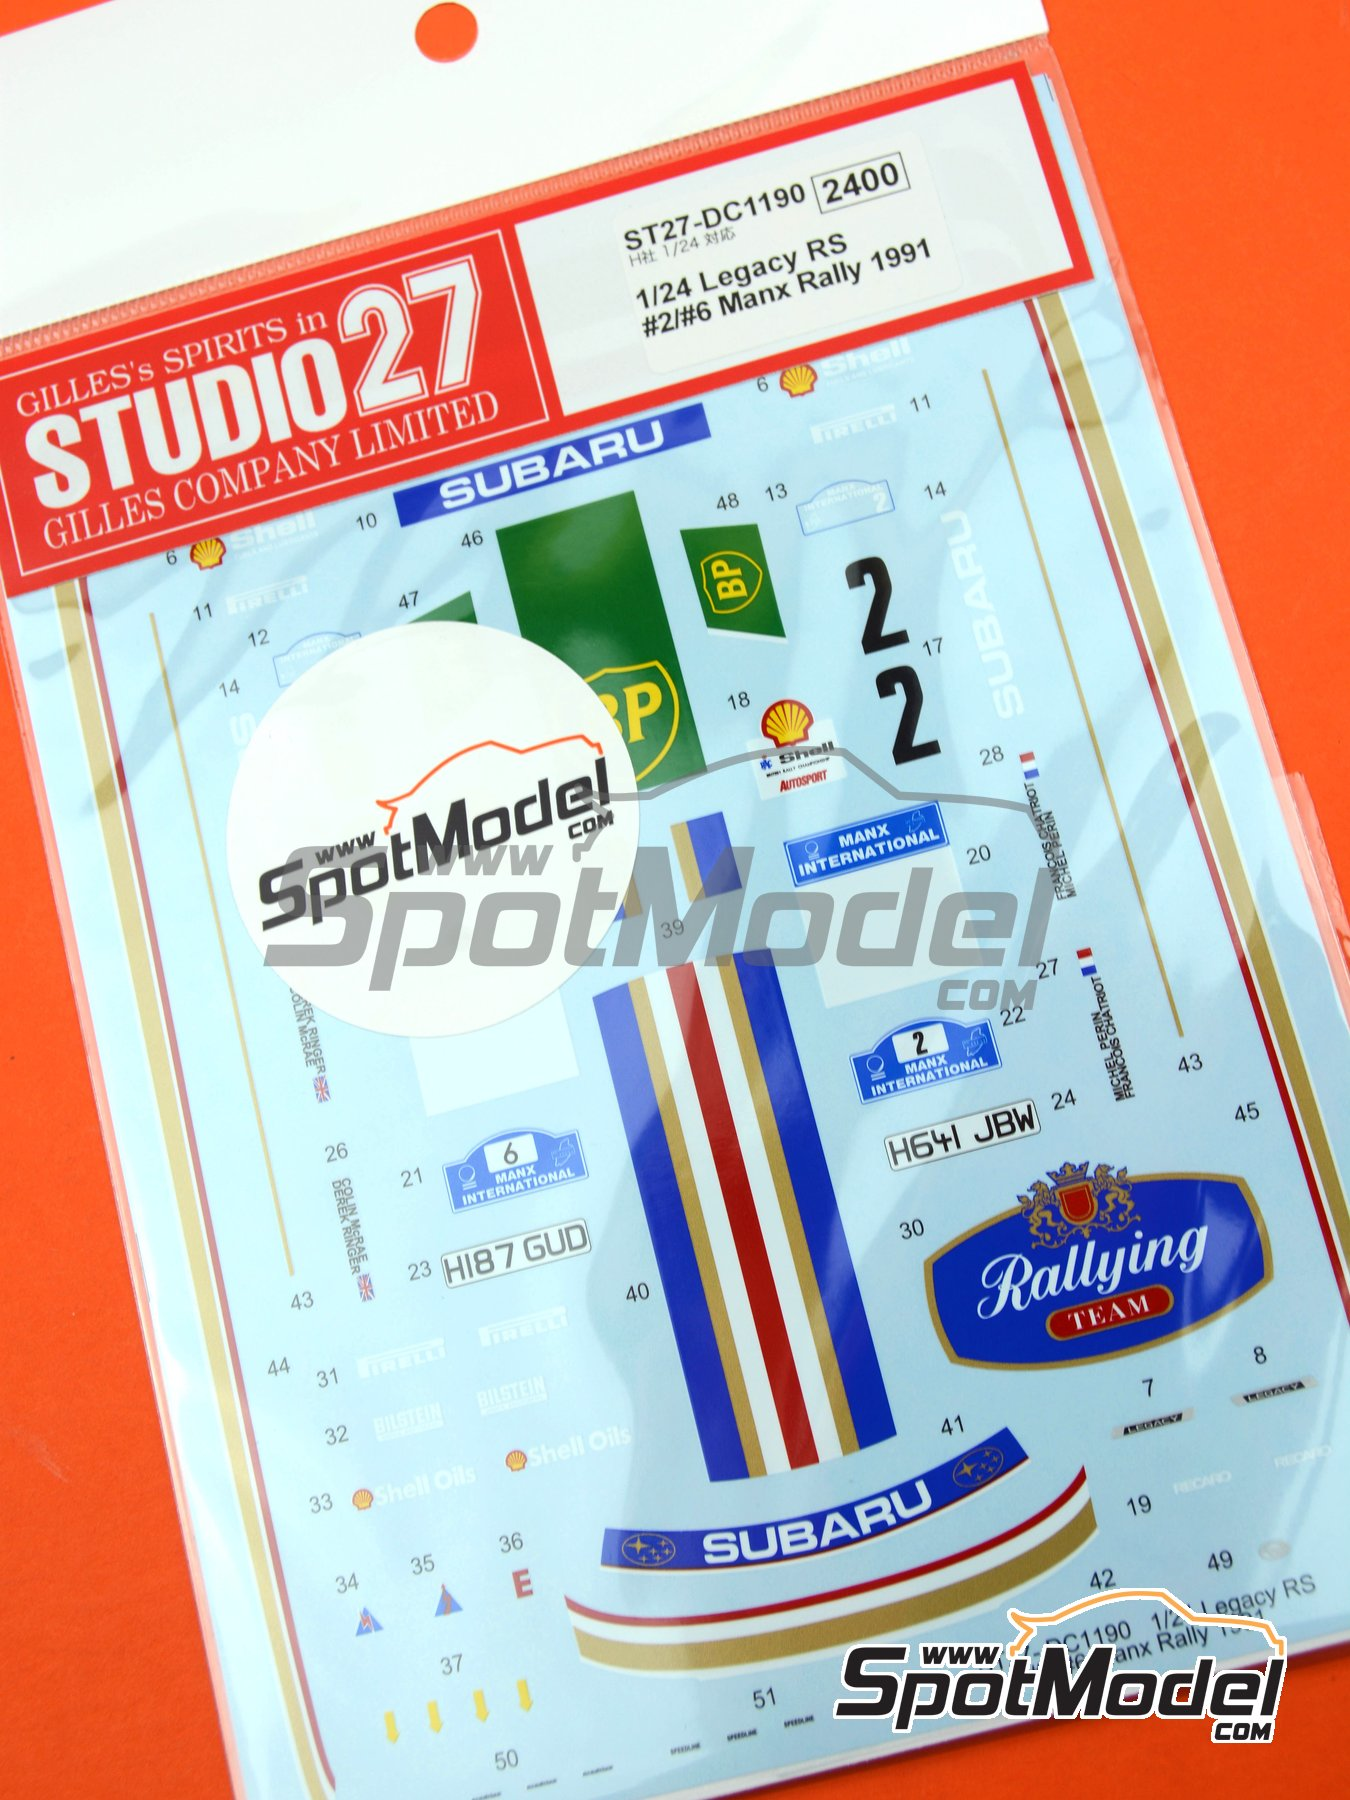 Subaru Legacy RS Rothmans Subaru UK Rally Team - Manx International Rally 1991 | Marking / livery in 1/24 scale manufactured by Studio27 (ref.ST27-DC1190) image